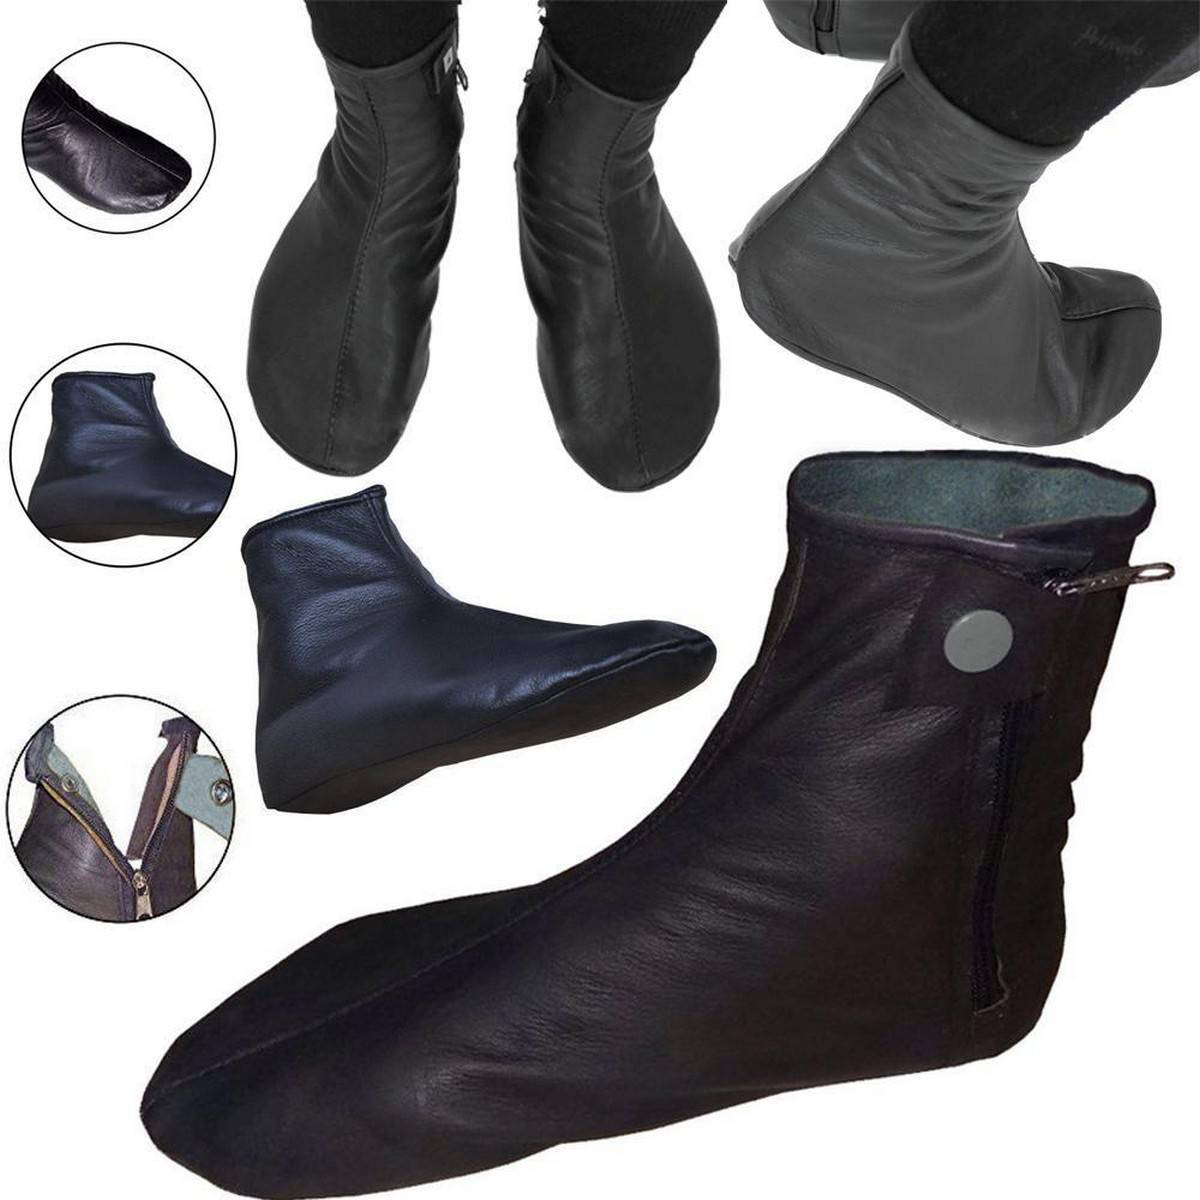 Halal Cow Leather Socks Mozay For Men's Women's Hajj & Umrah Slipper With Zip and Button.